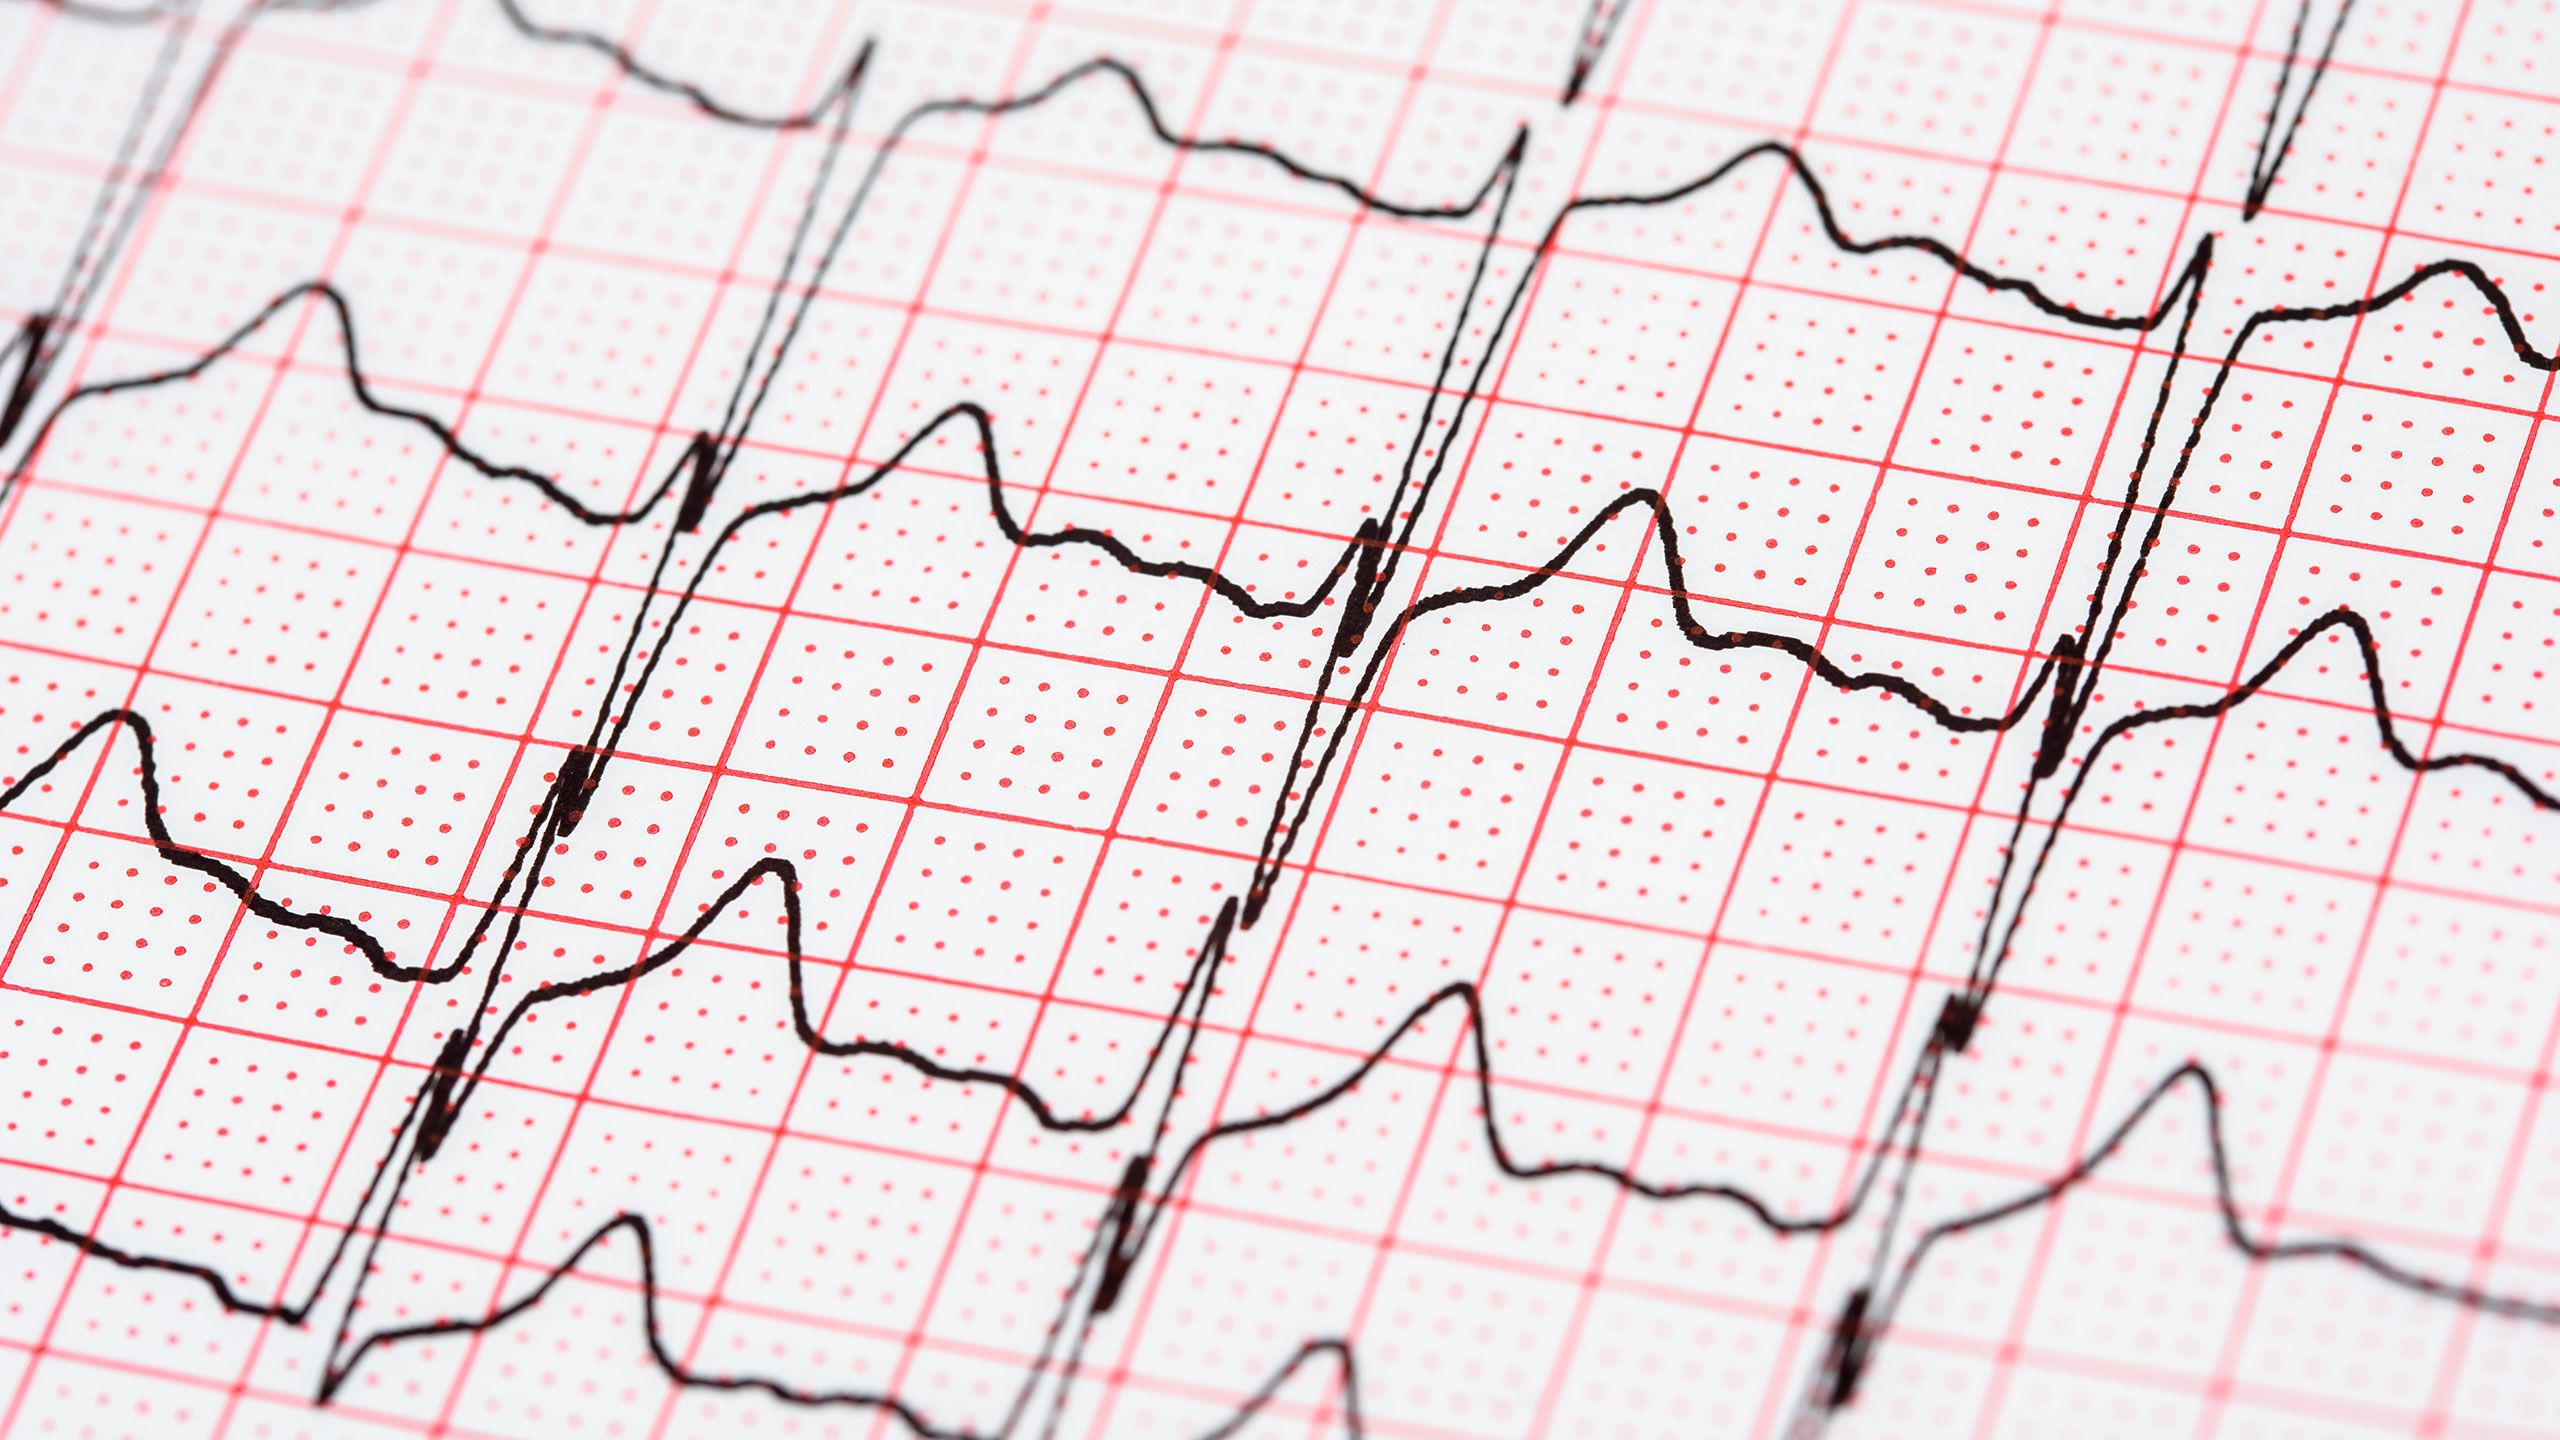 What You Need to Know About Atrial Fibrillation